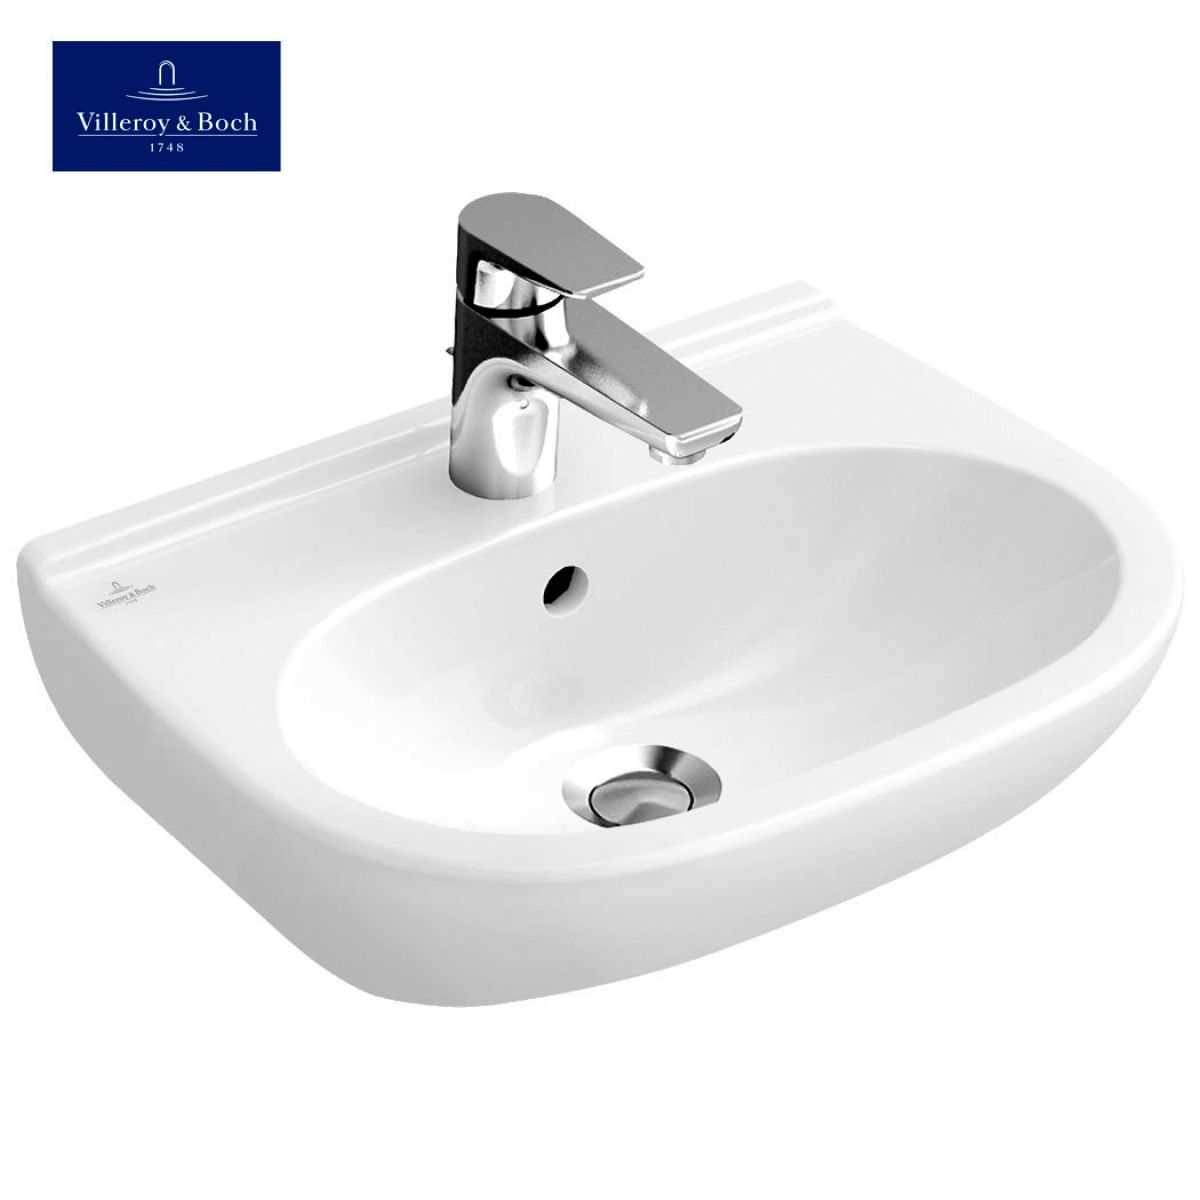 villeroy boch o novo compact washbasin uk bathrooms. Black Bedroom Furniture Sets. Home Design Ideas